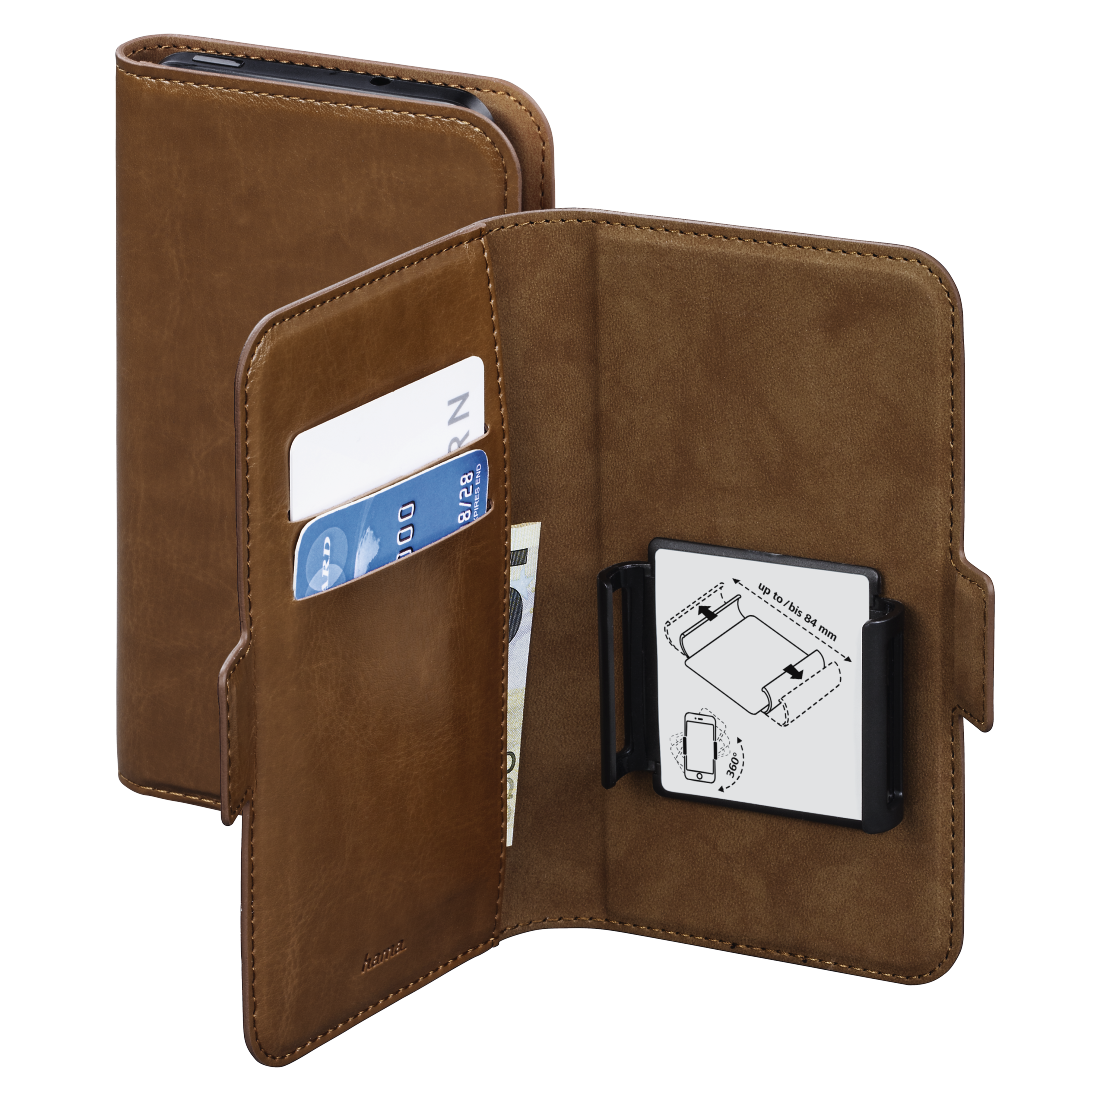 abx High-Res Image - Hama, Smart Move Booklet Case, size XL (4.7 - 5.1), brown